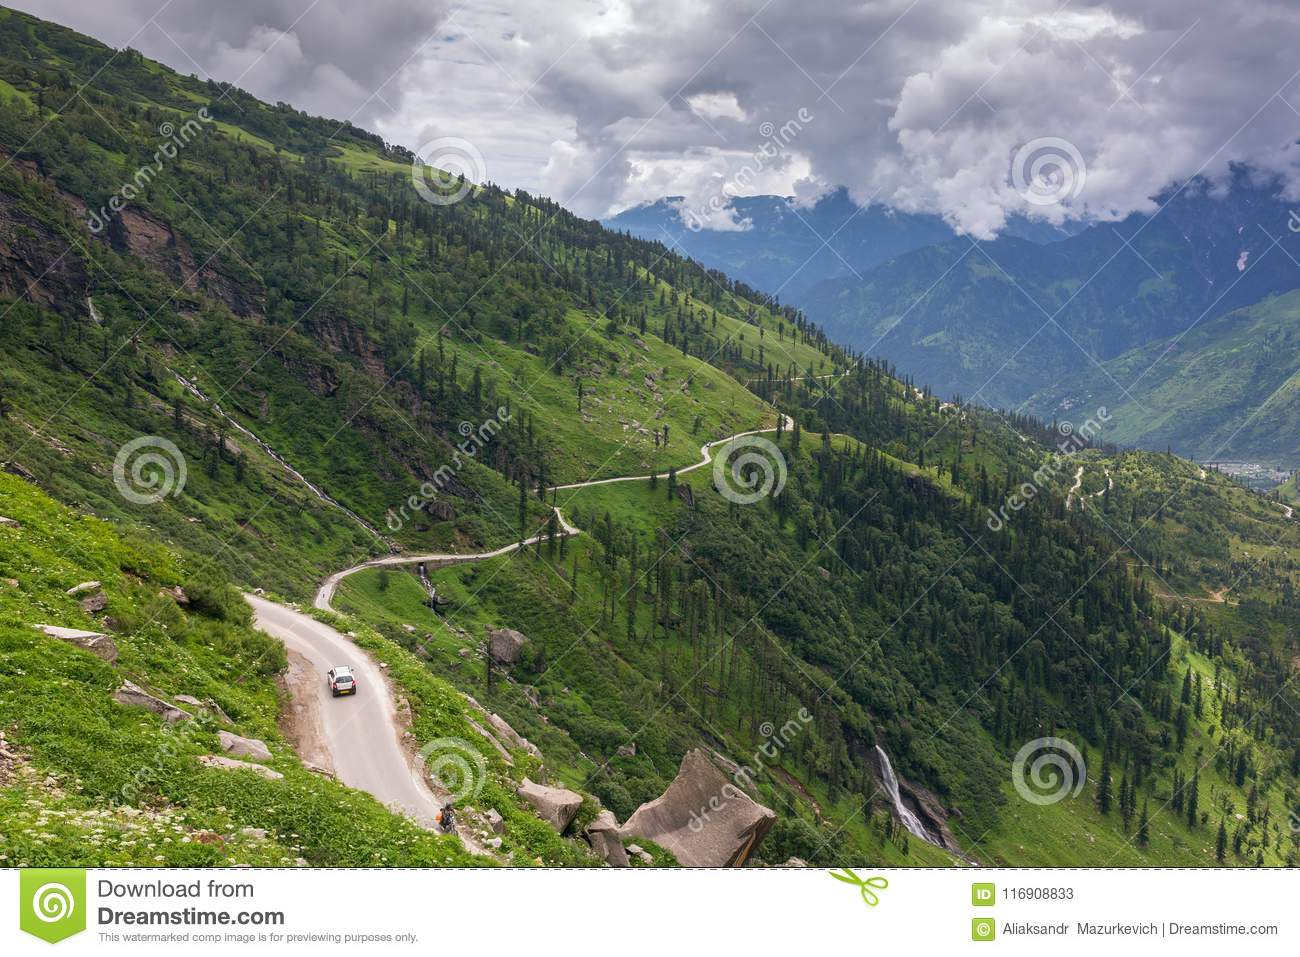 Road from Rohtang pass through the beautiful green Kullu valley in Himachal Pradesh state